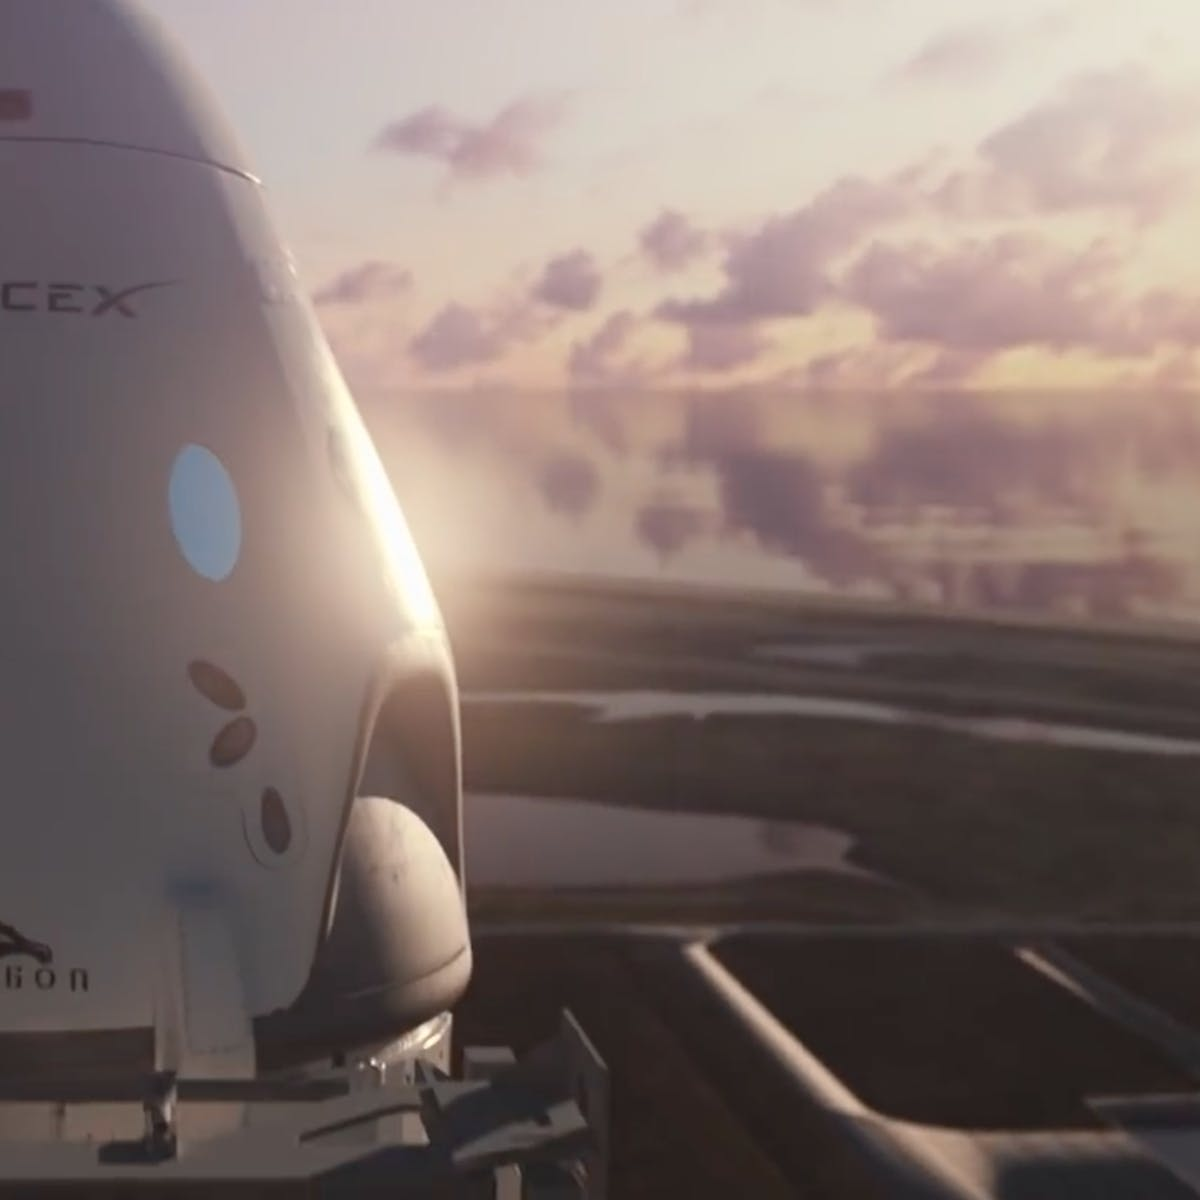 SpaceX: Elon Musk's Crew Dragon demo video teases 5 key innovations